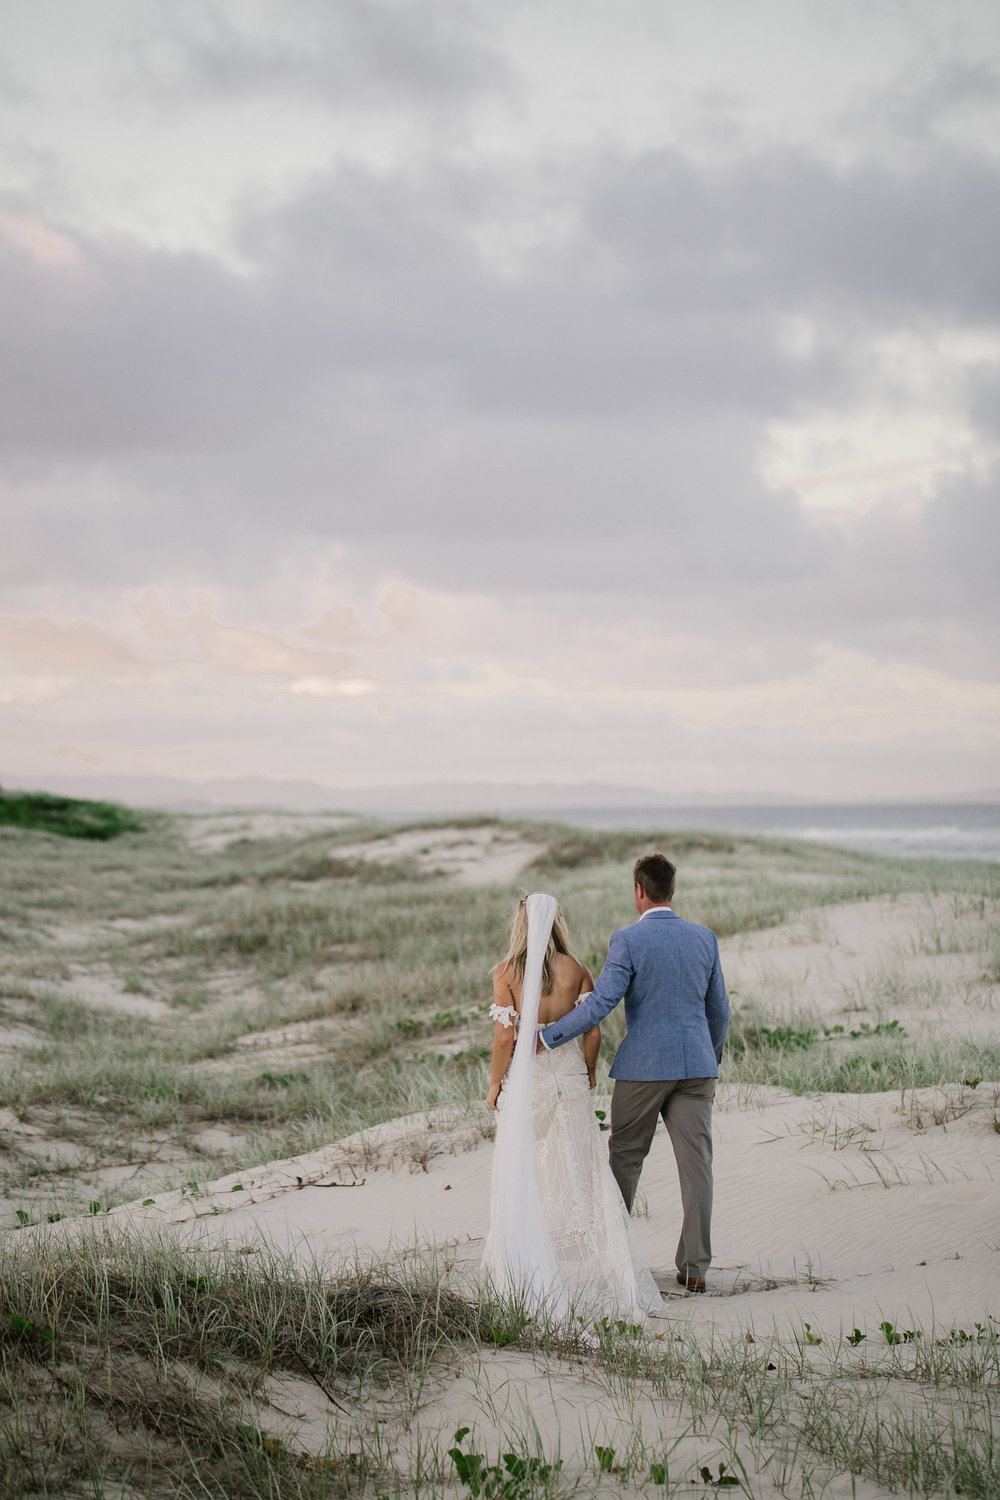 Byron Beach Wedding_True North Photography_Gold Coast_Byron Bay weddings_Weddings_love_light_hinterland_ceremony-4.jpg